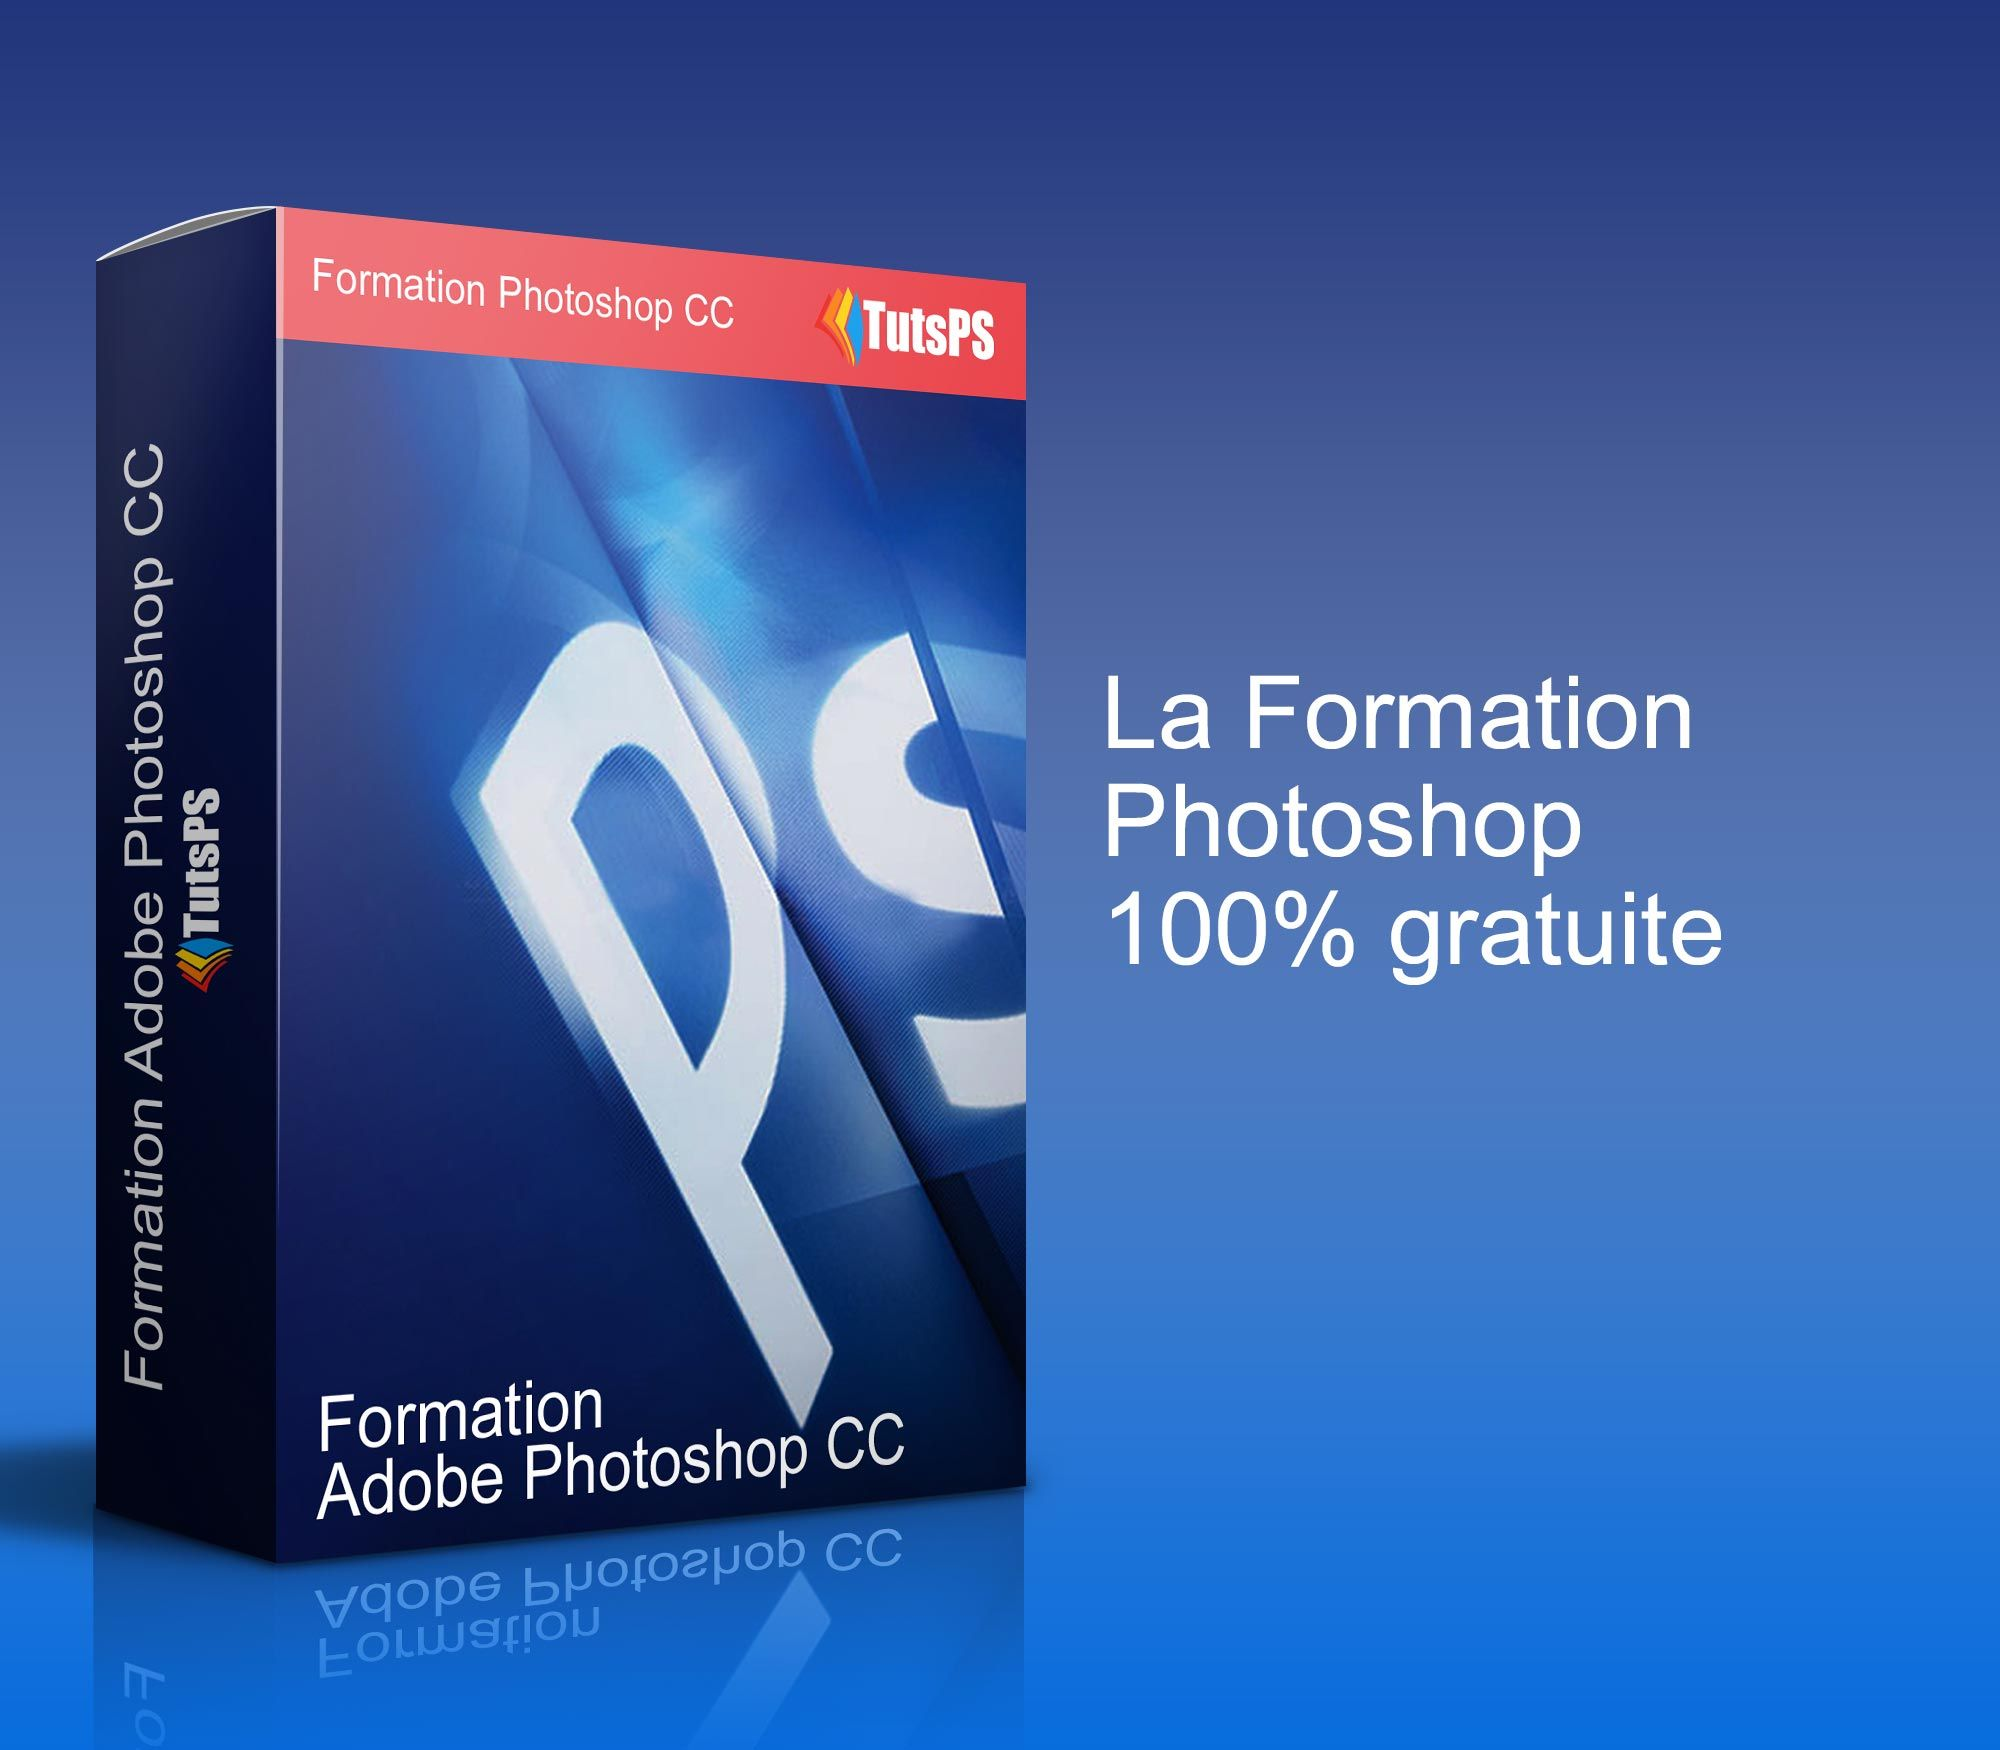 Formation Photoshop Cc Formation Photoshop Cc Partie 01 Formation Photoshop Photoshop Tutoriel Photoshop